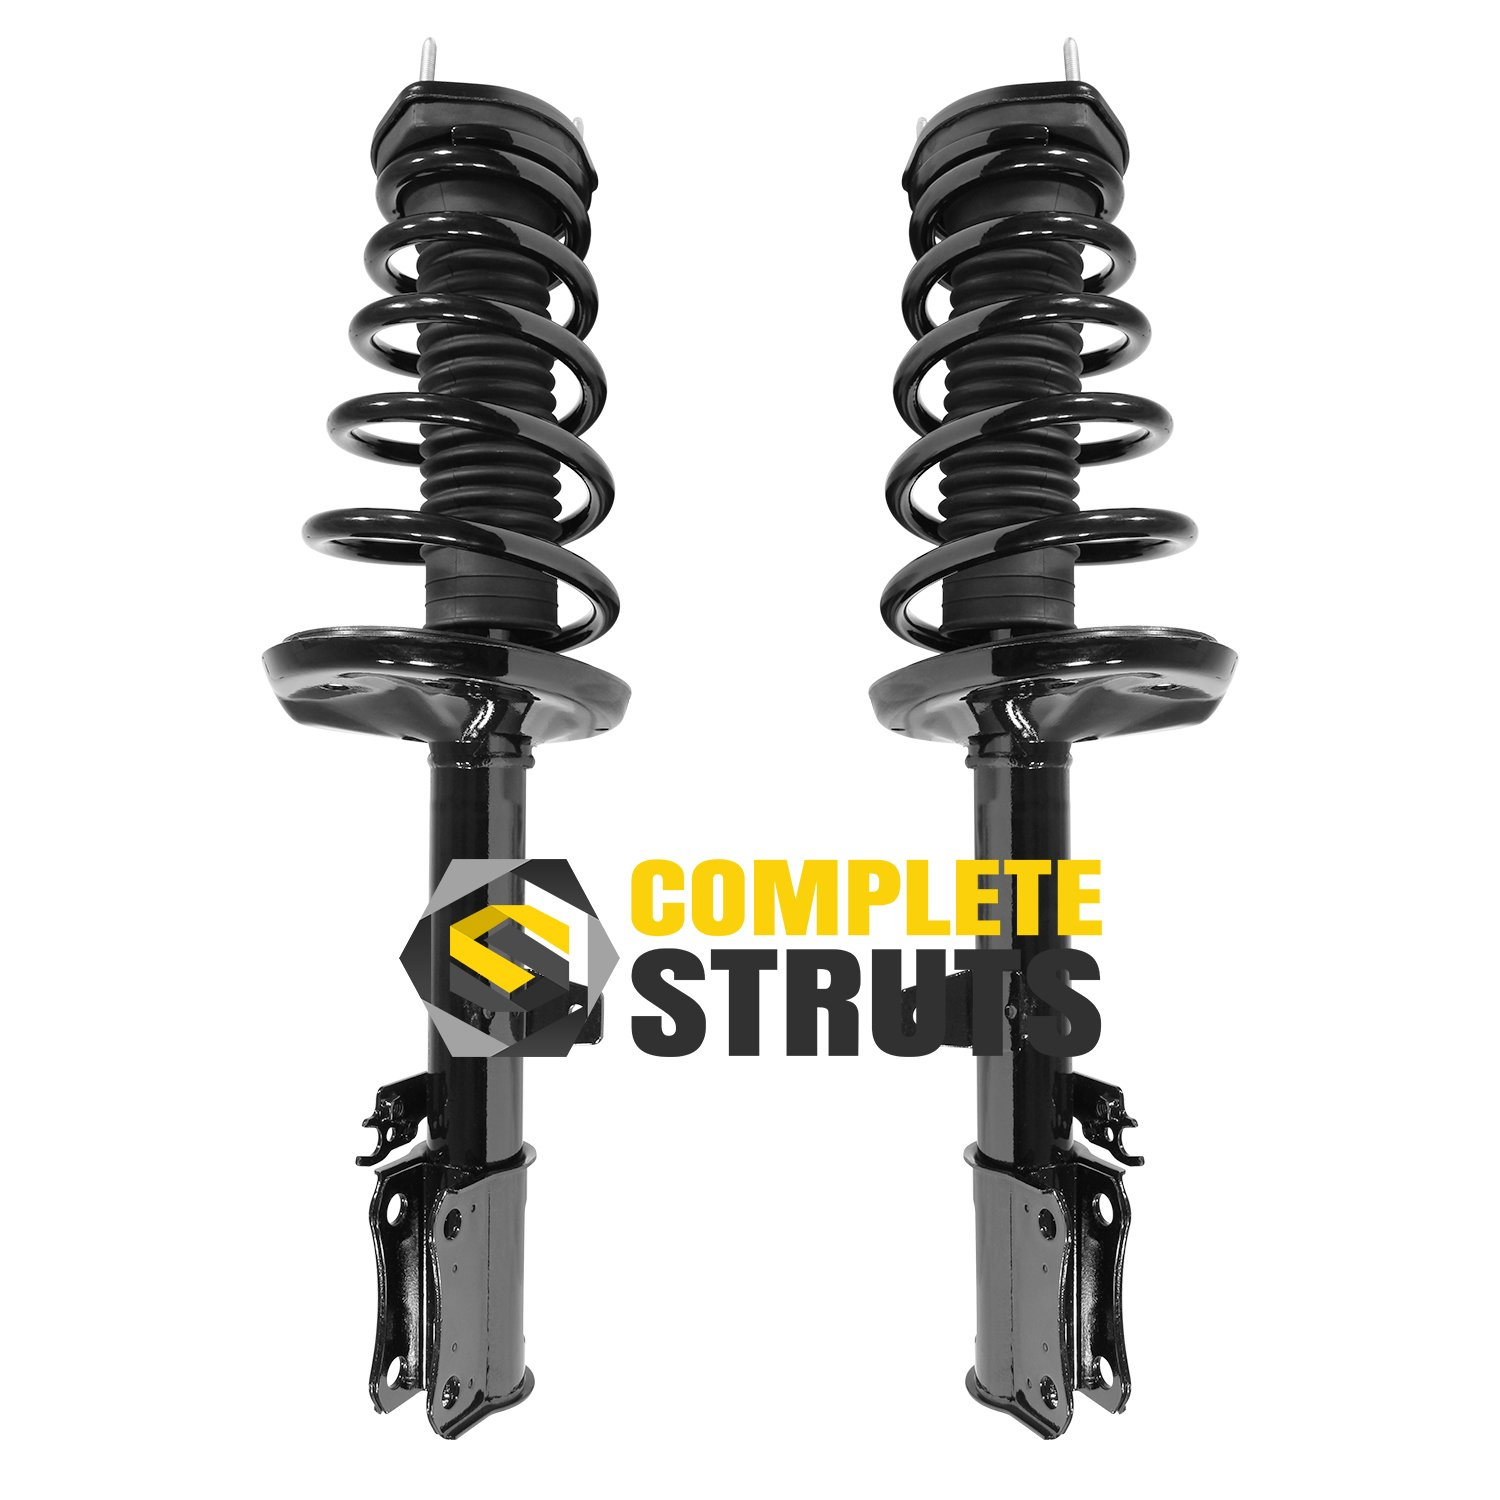 Pair Rear Quick Complete Struts /& Coil Spring Assemblies Compatible with 1999-2003 Lexus RX300 FWD